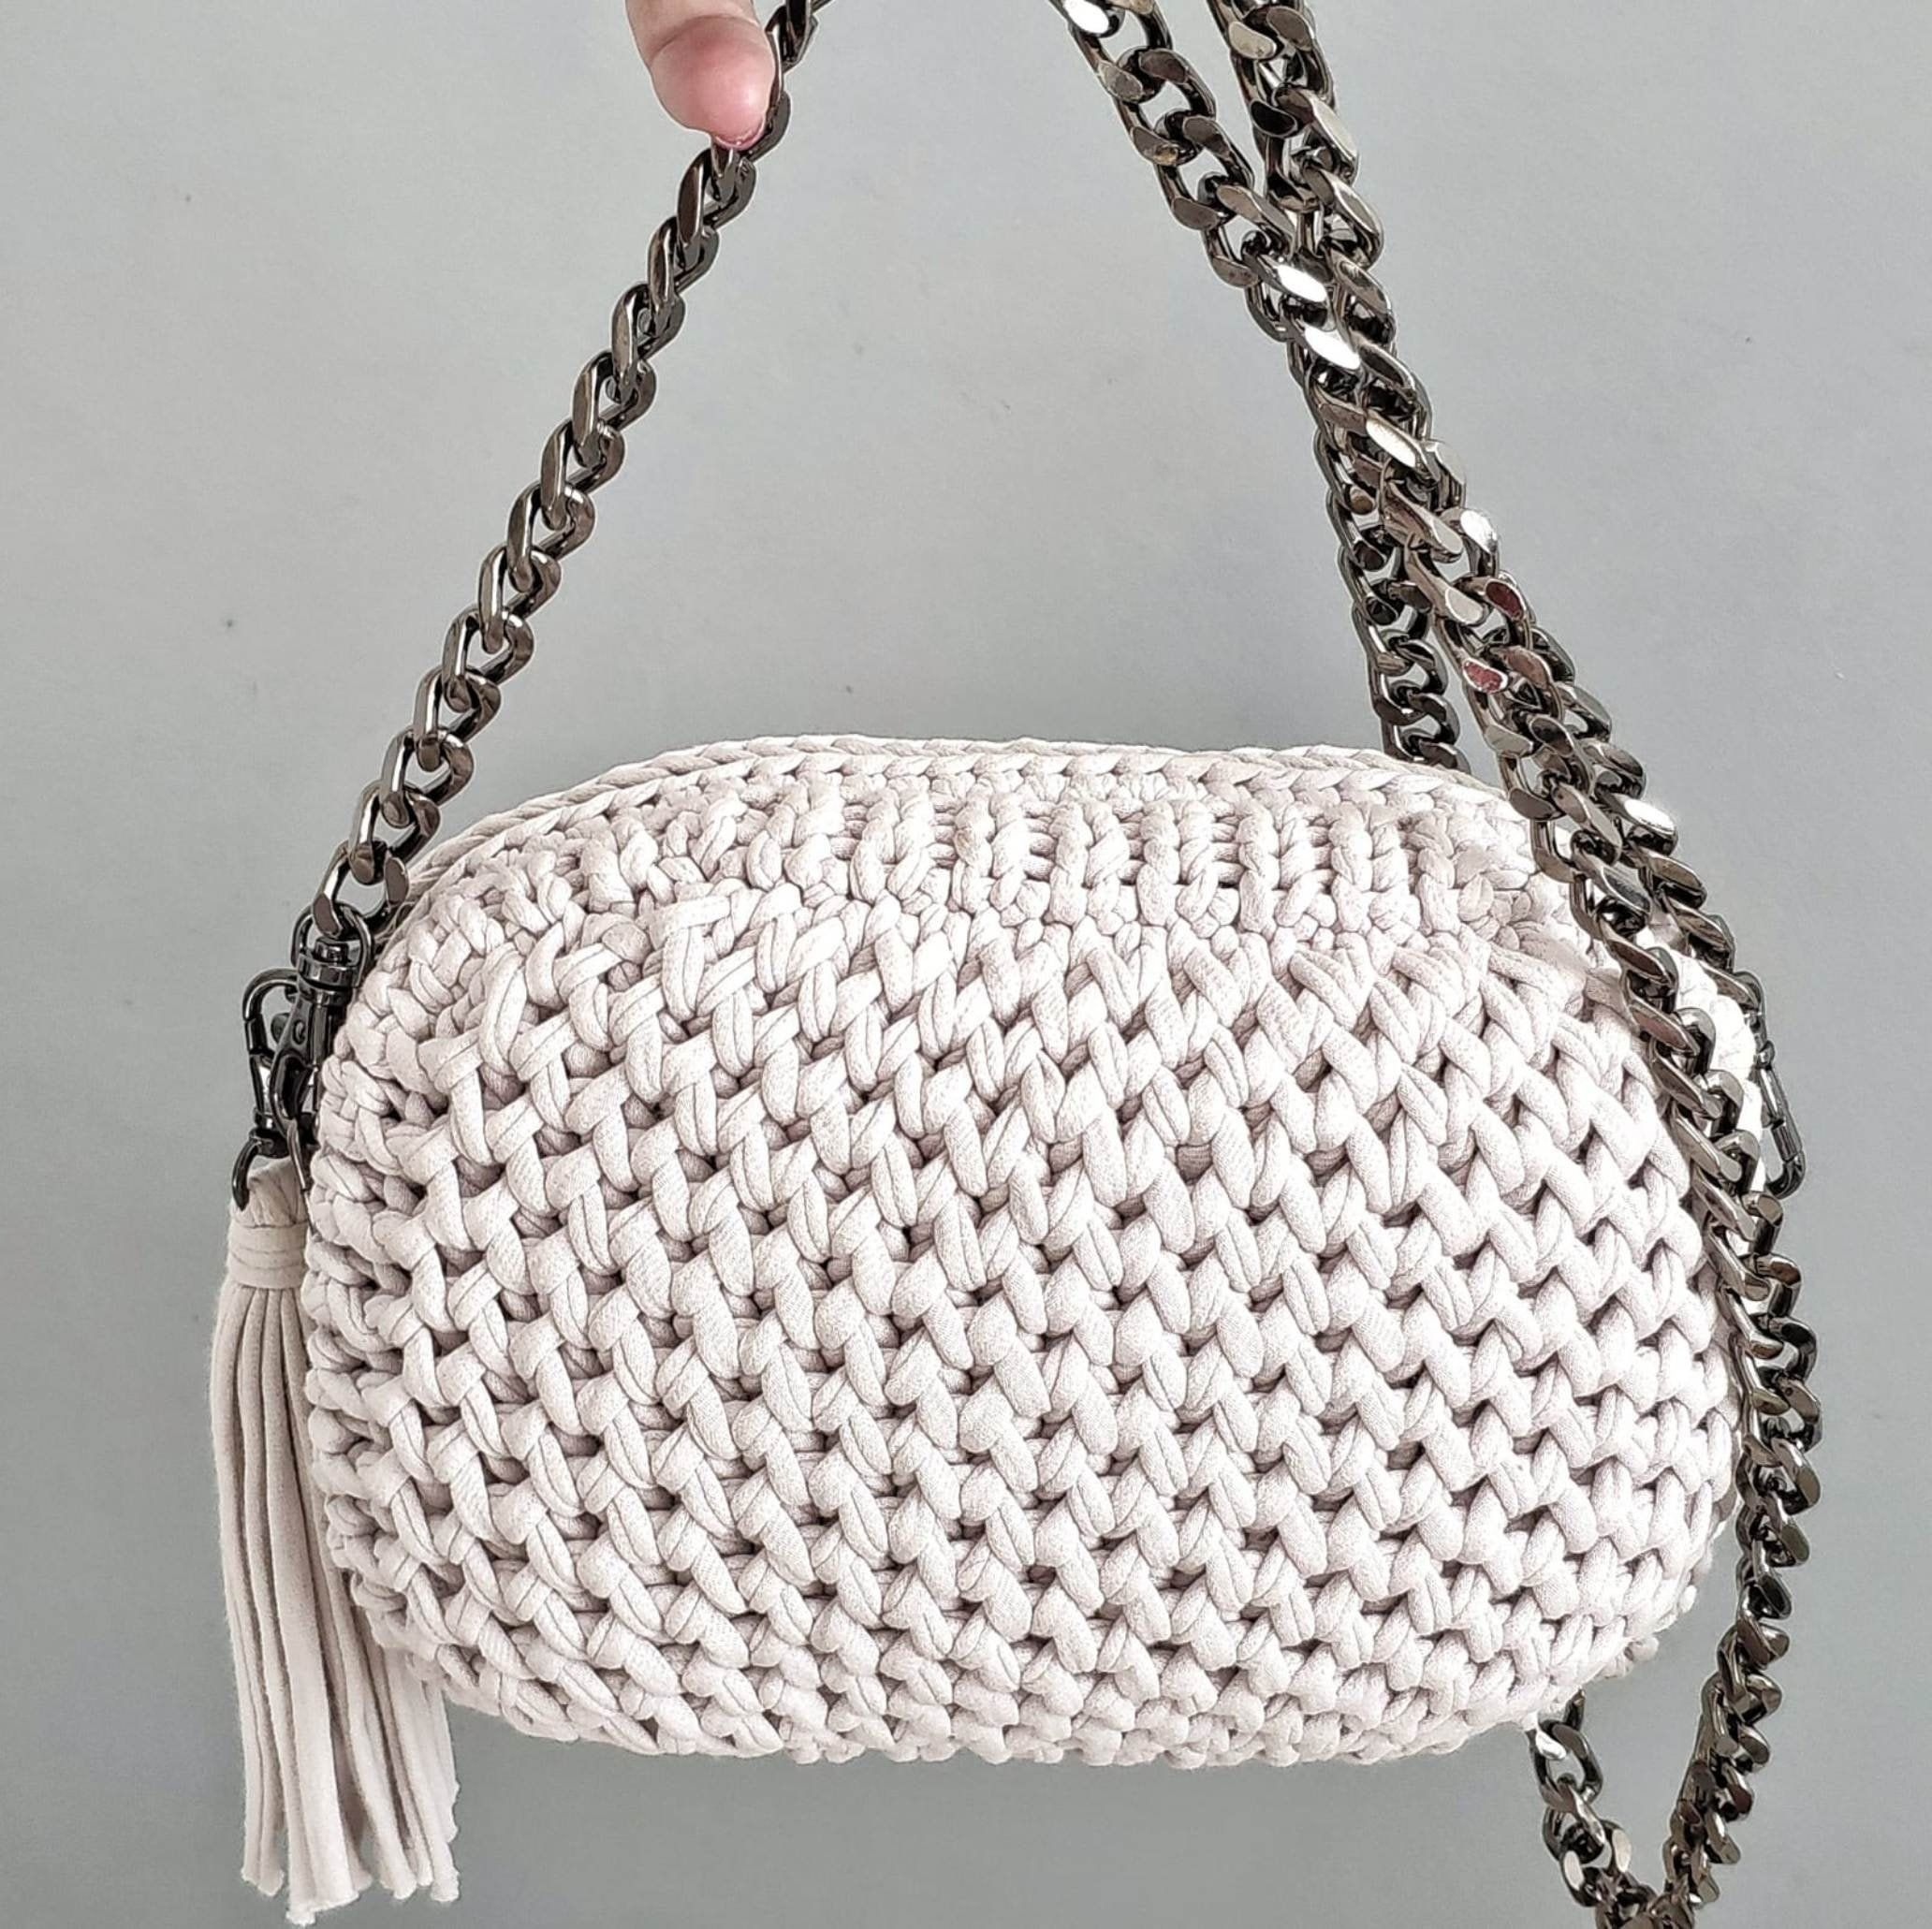 Gray Crossbody Bag Knitted Small Cotton Bag Casual Office Bag With Metal Strap Shristmas Gift Grey Crossbody Bag Casual Office Bag Casual Bags